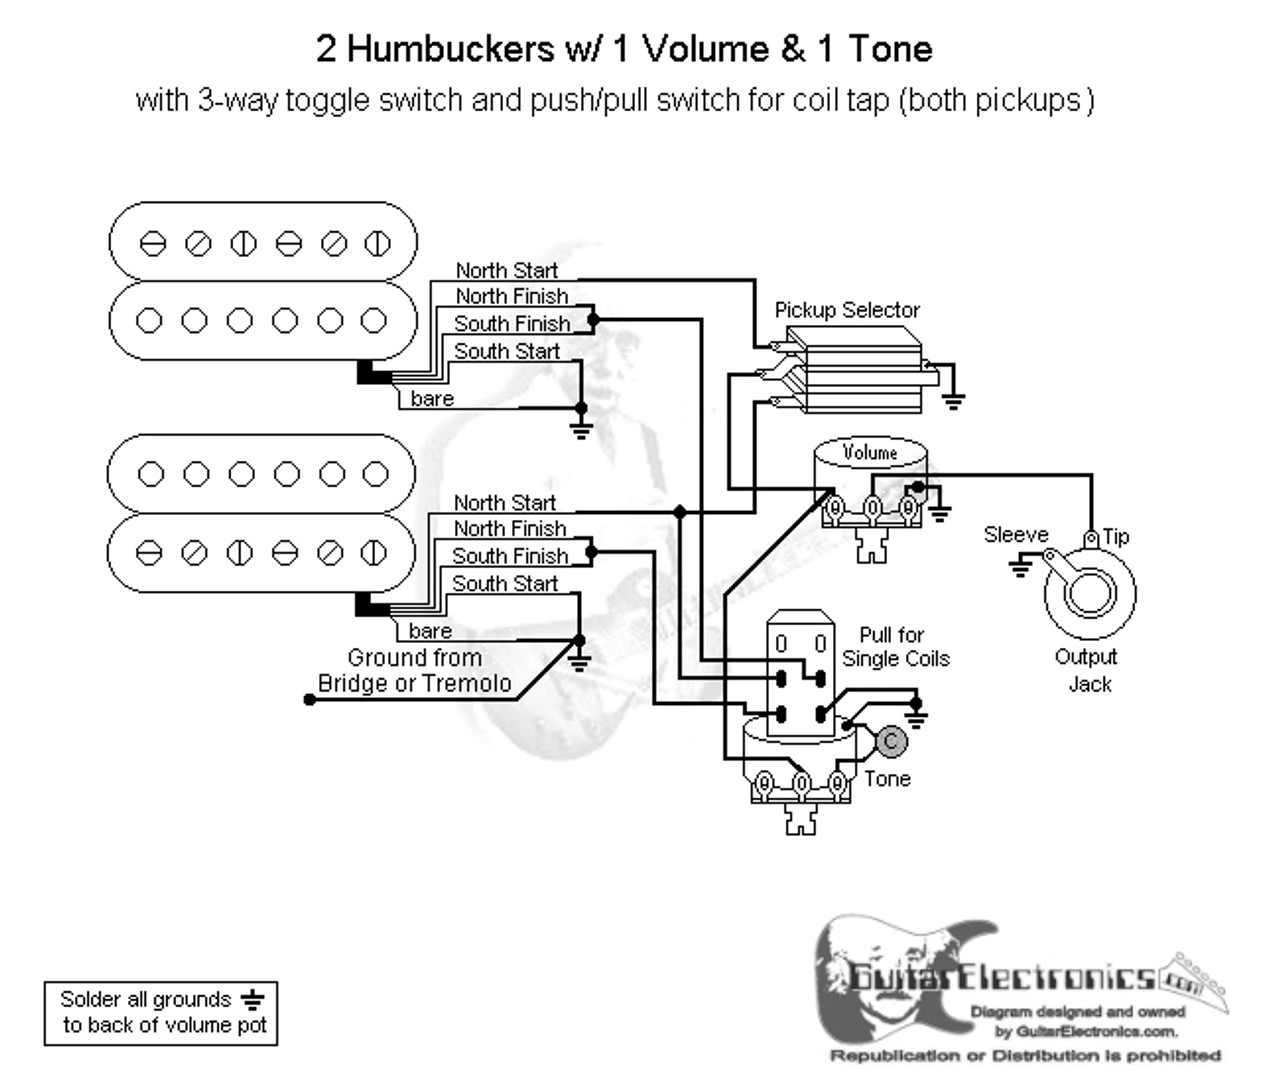 hight resolution of wiring diagrams single humbucker guitar pick up tone volume and2 humbuckers 3 way toggle switch 1